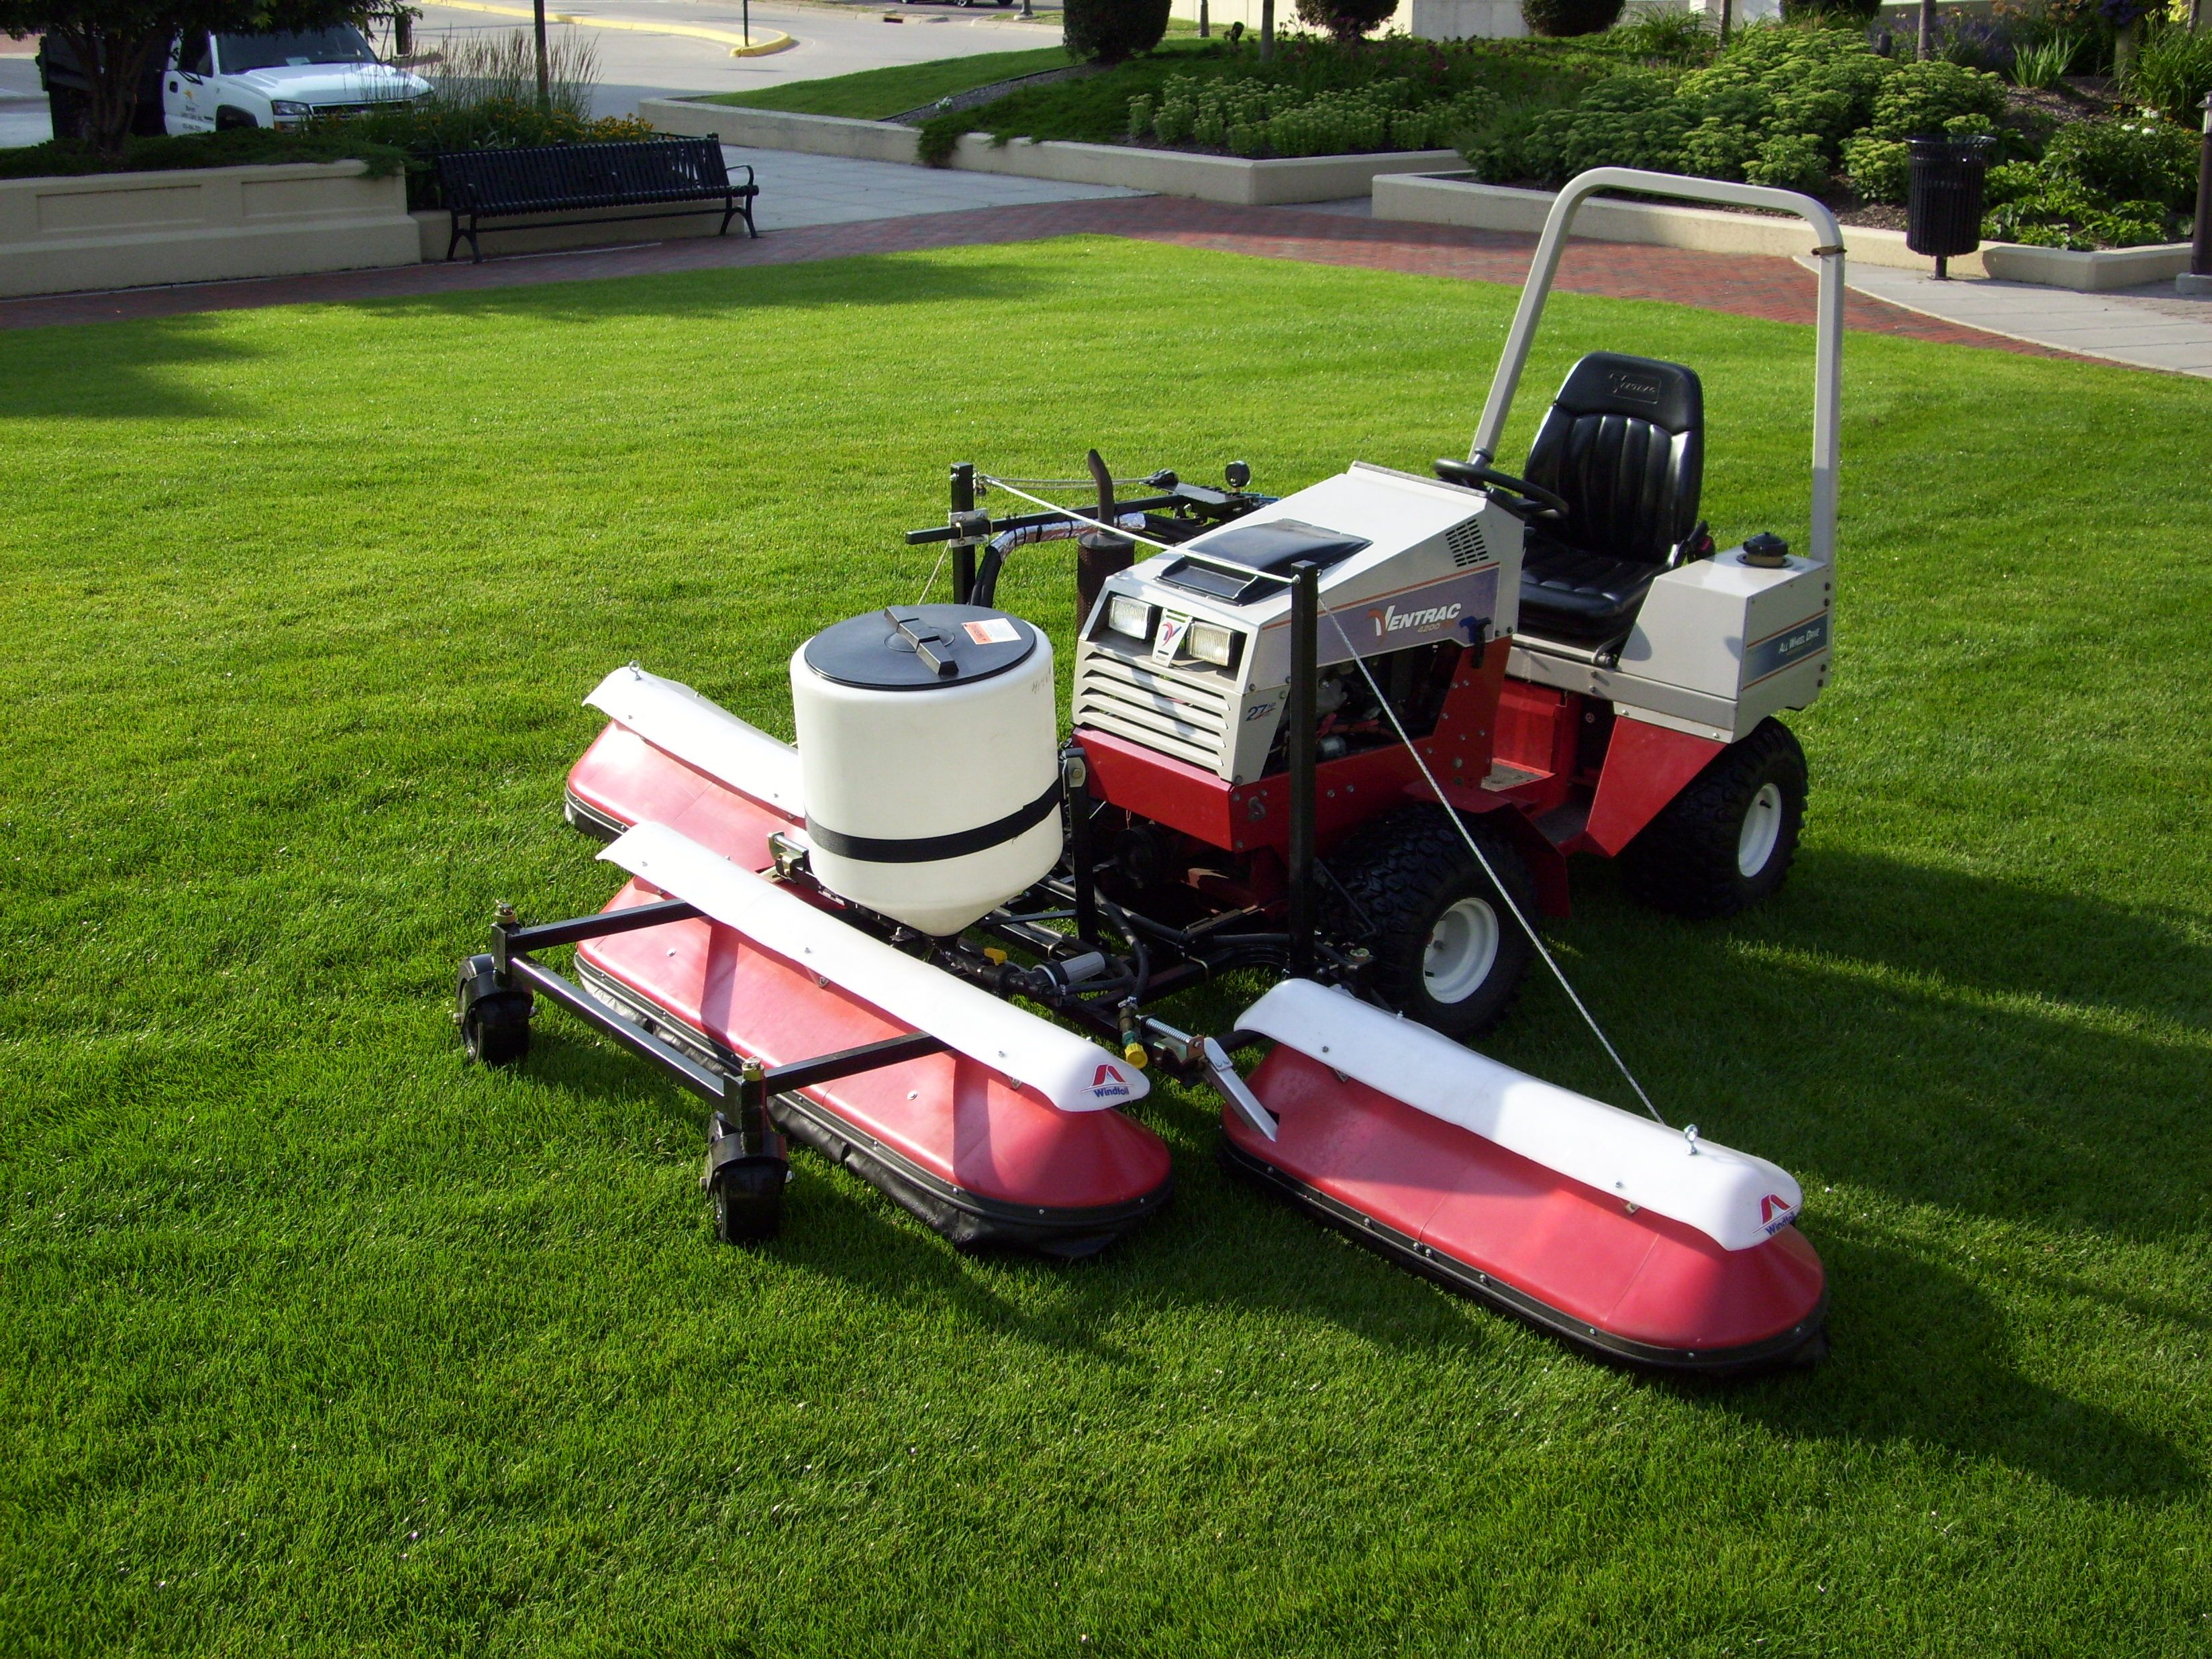 One of our Ventrac tractors equipped with a fertilizer